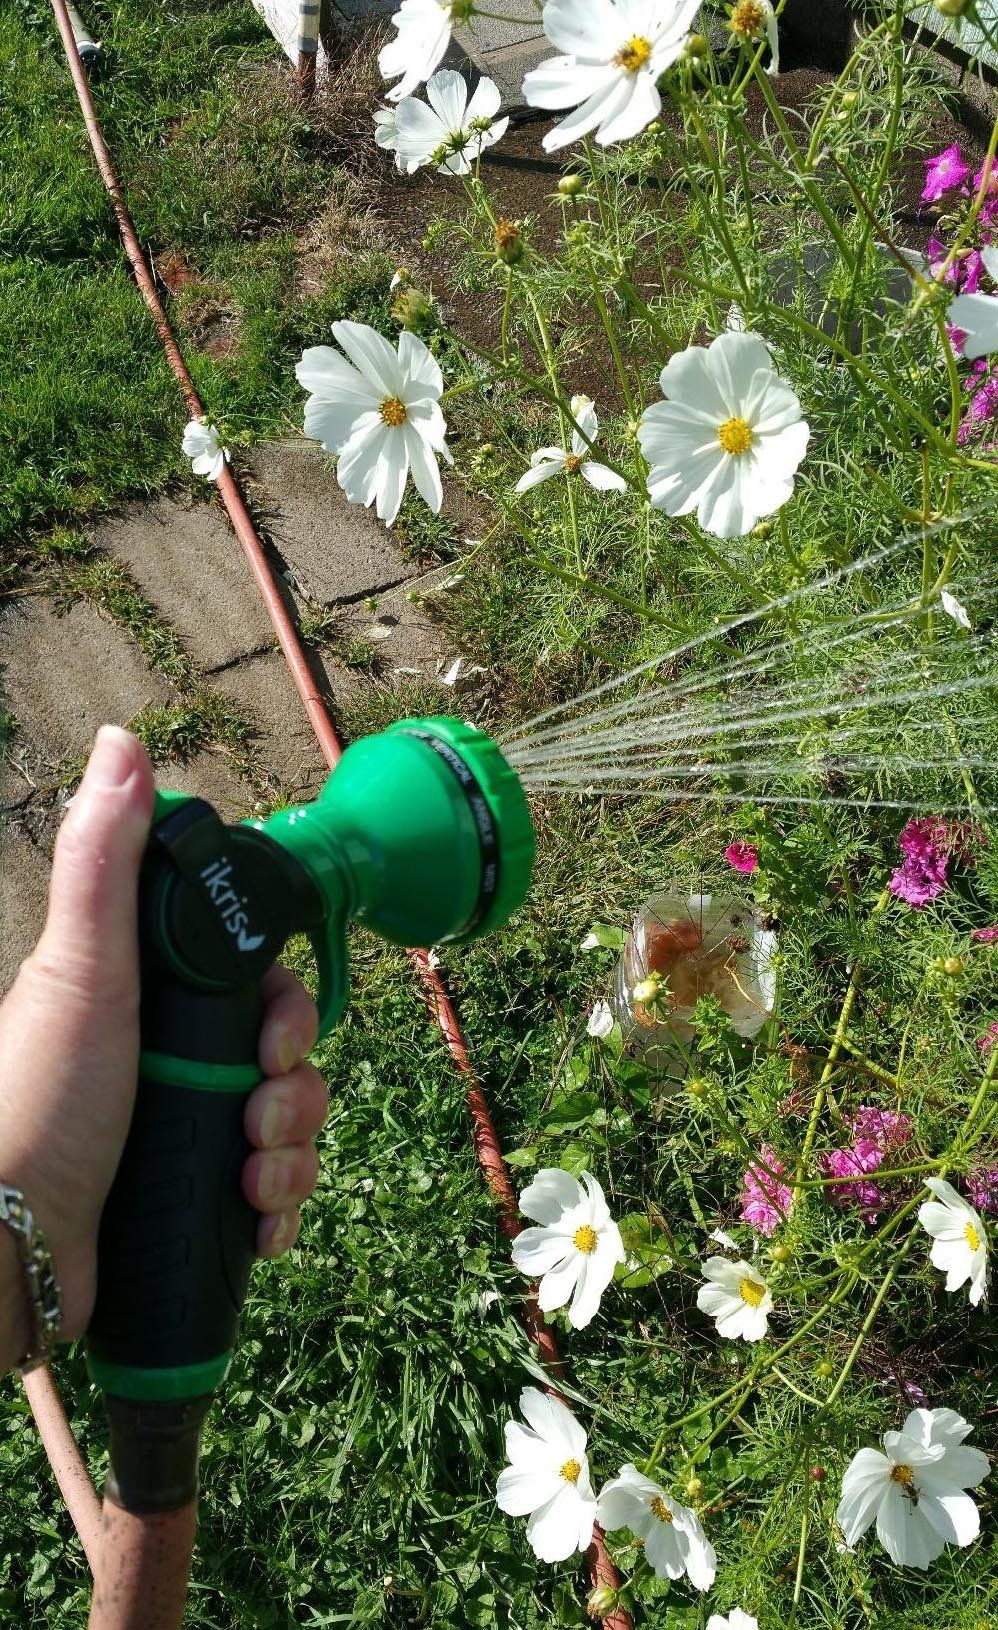 Ikris Metal Garden Hose Nozzle 10pattern Nosqueeze Sprayer You Can Find Out More Details At The Link Of The Image Metal Garden Hose Hose Nozzle Garden Hose